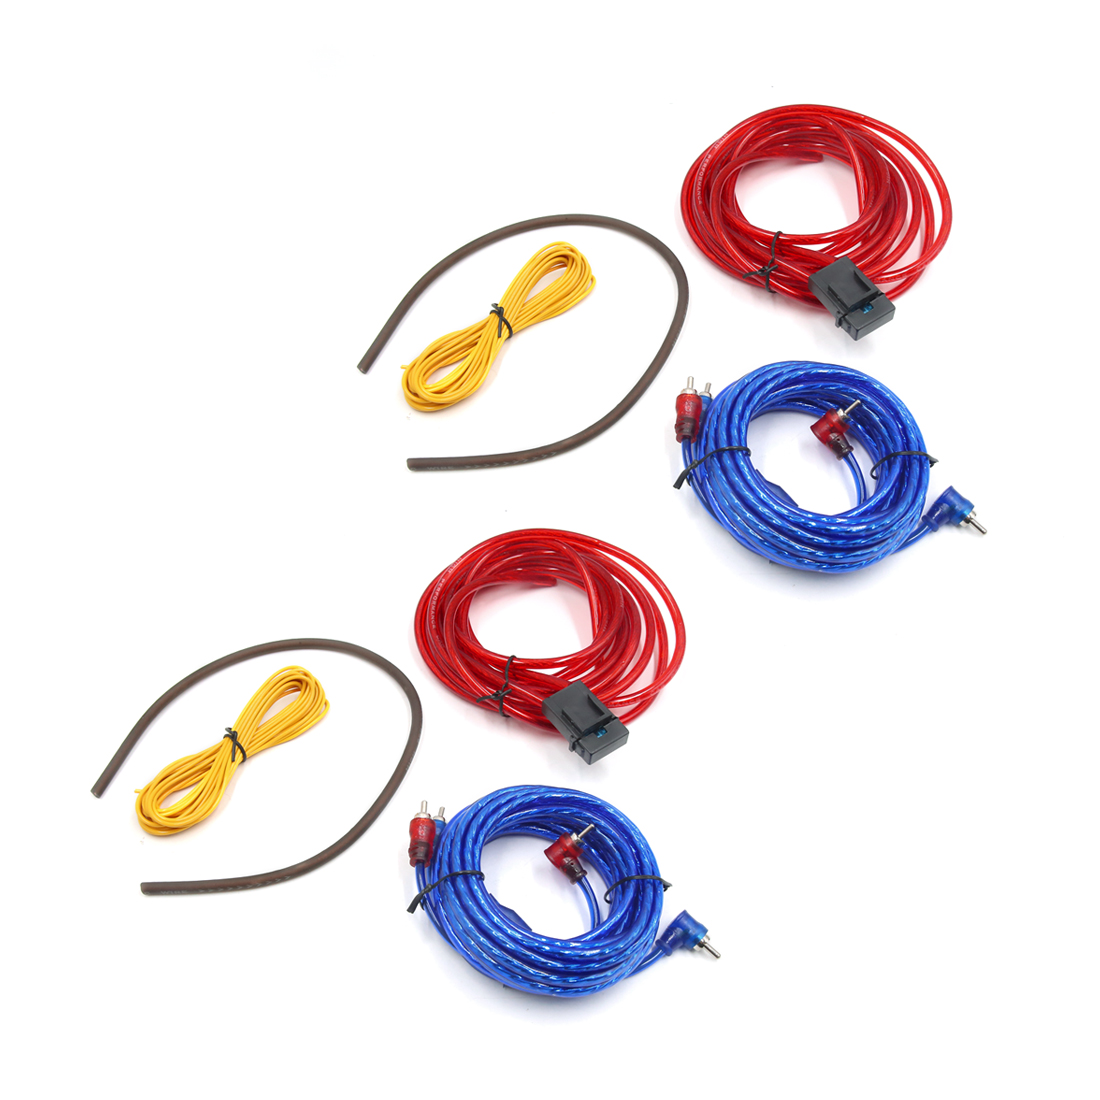 2Pcs 10 GA Car Audio System RCA Power Control Speaker Amplifier Cable Wire Kit